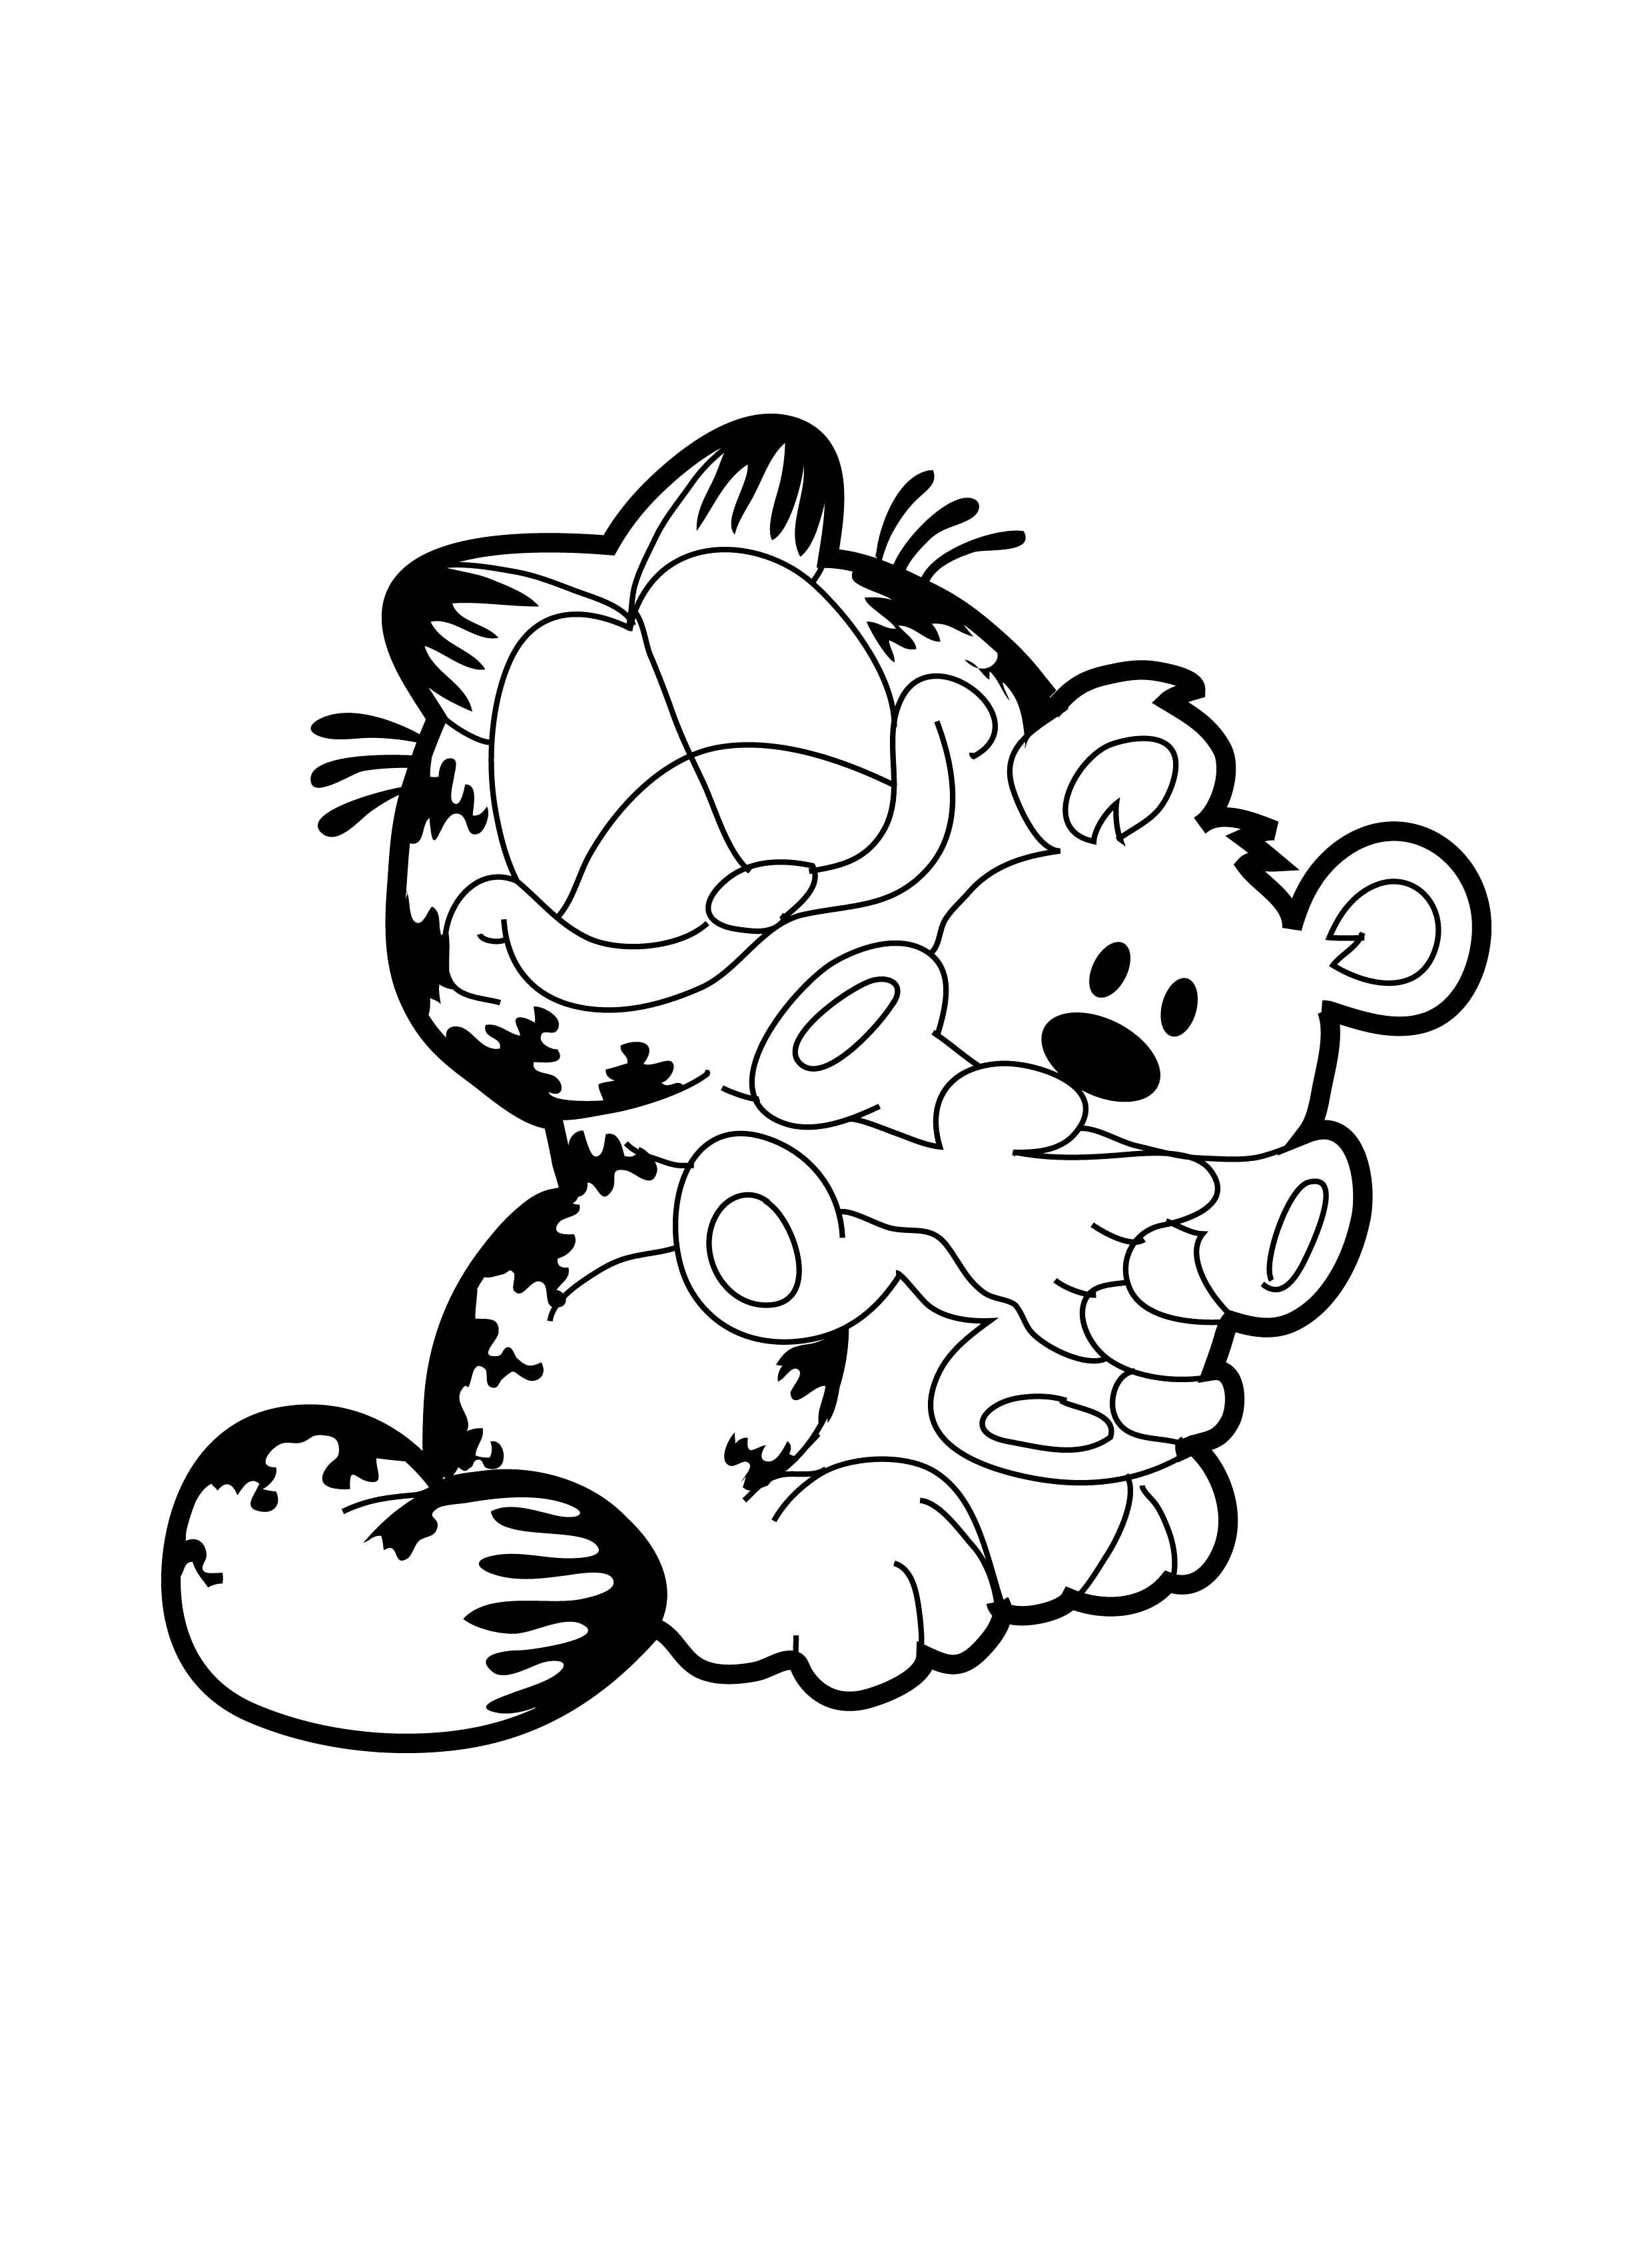 Printable coloring pages garfield - Garfield Very Like Doll Coloring Page